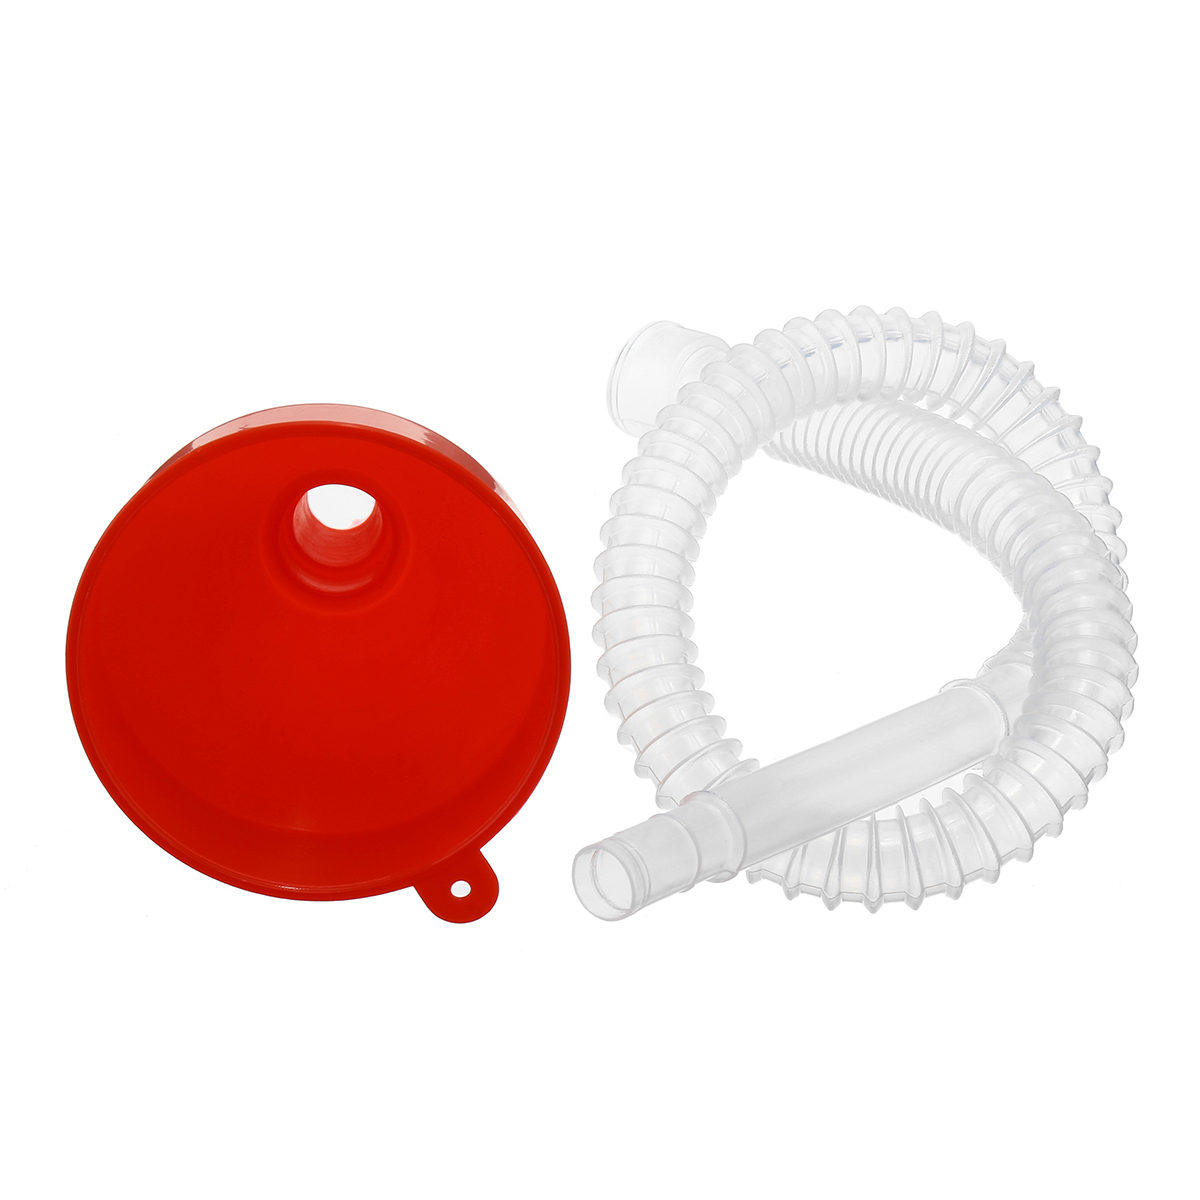 Motorcycle Funnel w/ Soft Pipe Pour Fuel Oil Petrol Vehicle Car Van Red Plastic